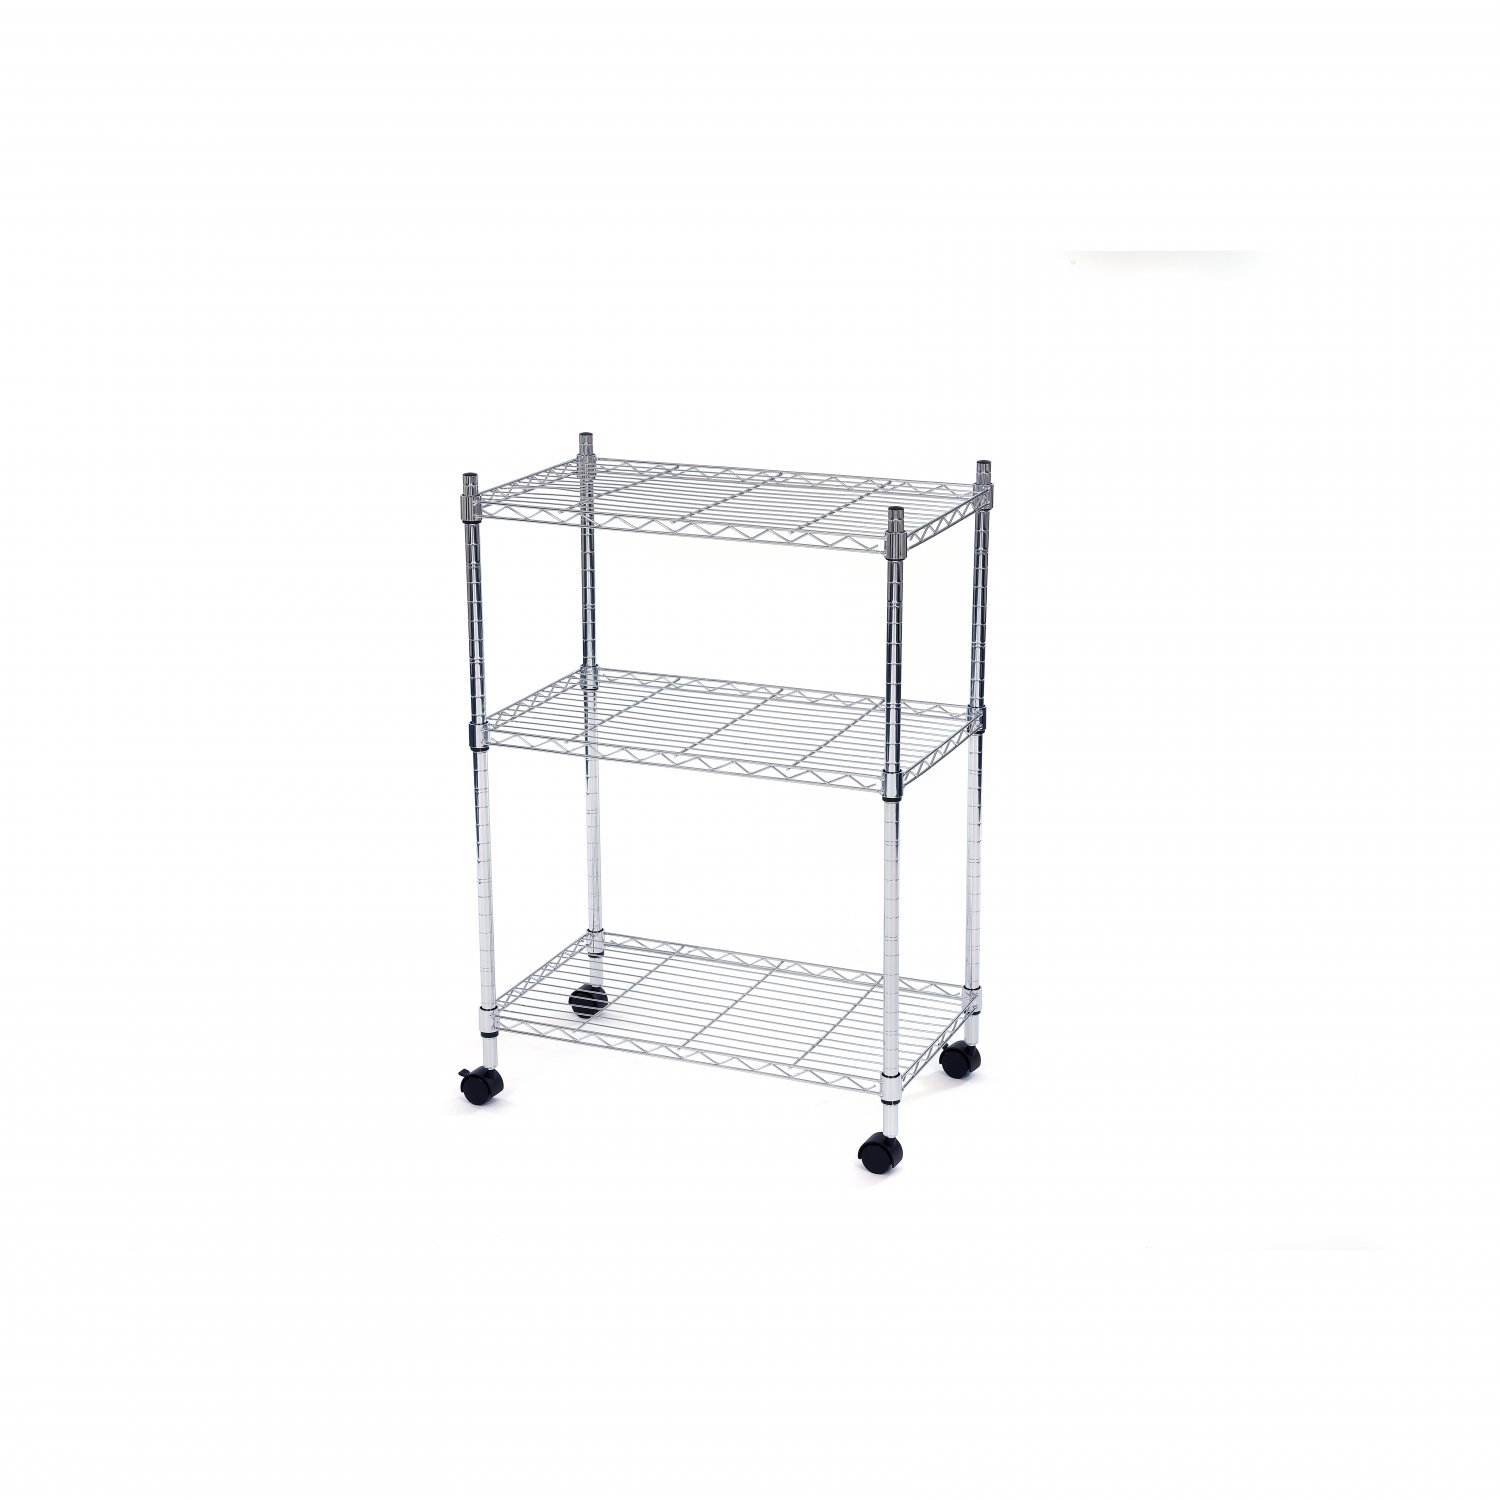 3 Tier Heavy Duty Steel Wire Rack Kitchen Storage Trolley Unit